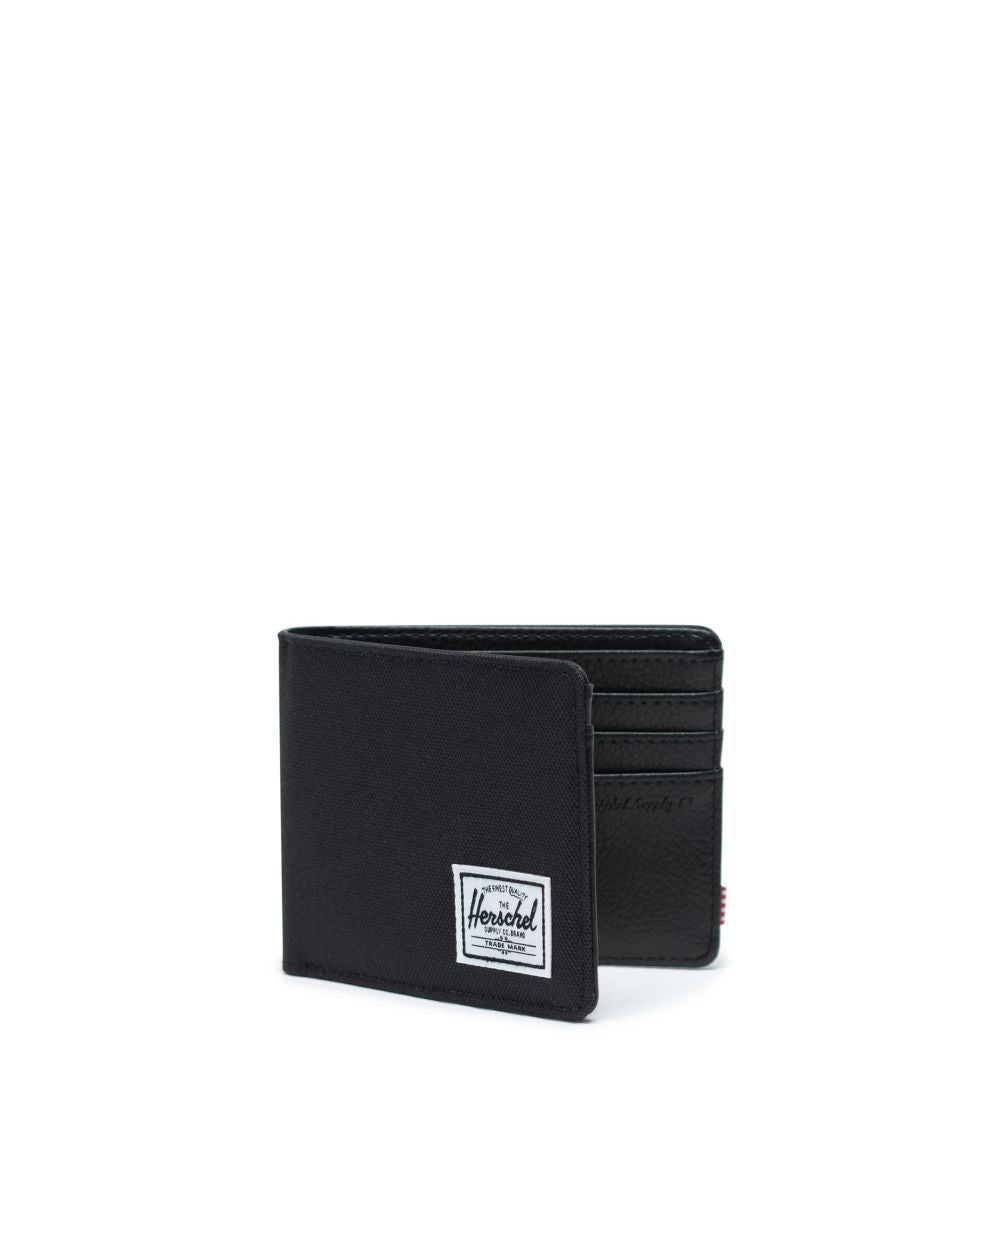 HERSCHEL WALLETS Default HANK WALLET BLACK